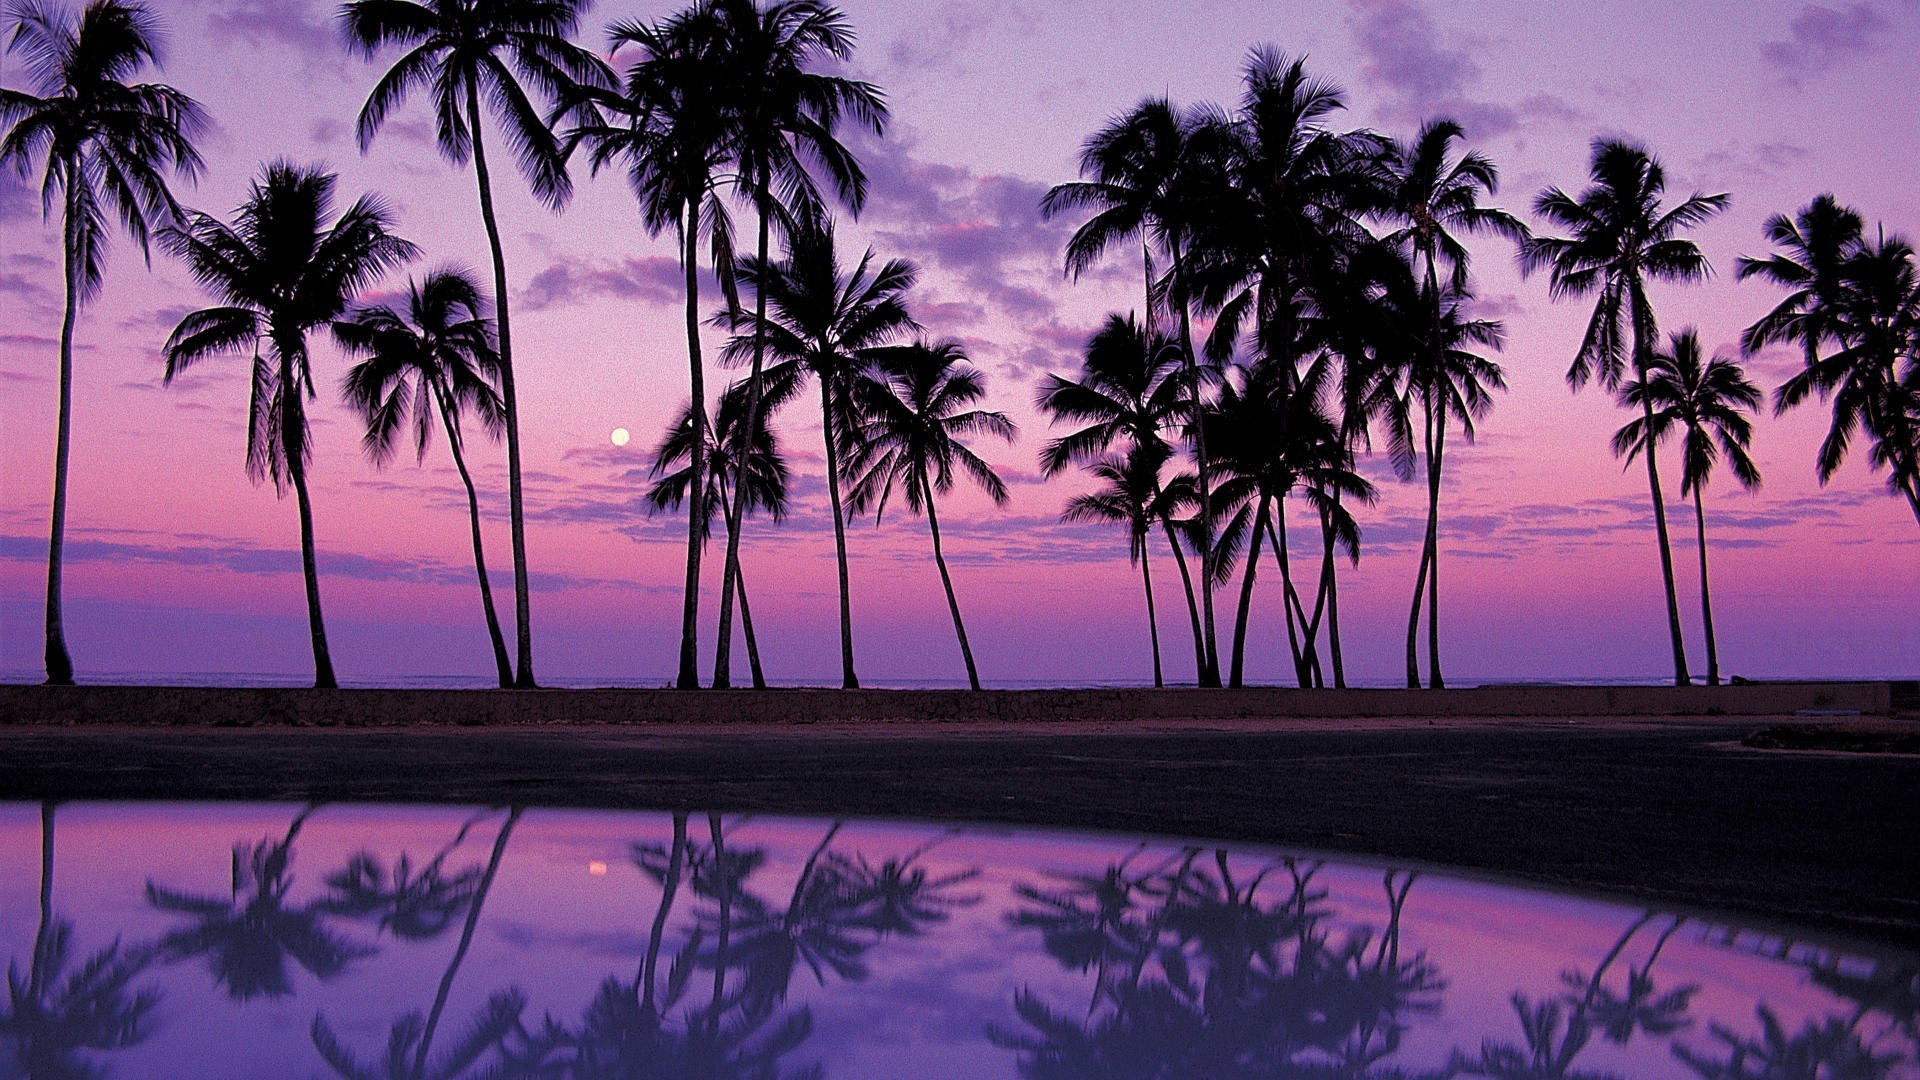 Res: 1920x1080, Palm Tree Wallpapers 5 - 1920 X 1080